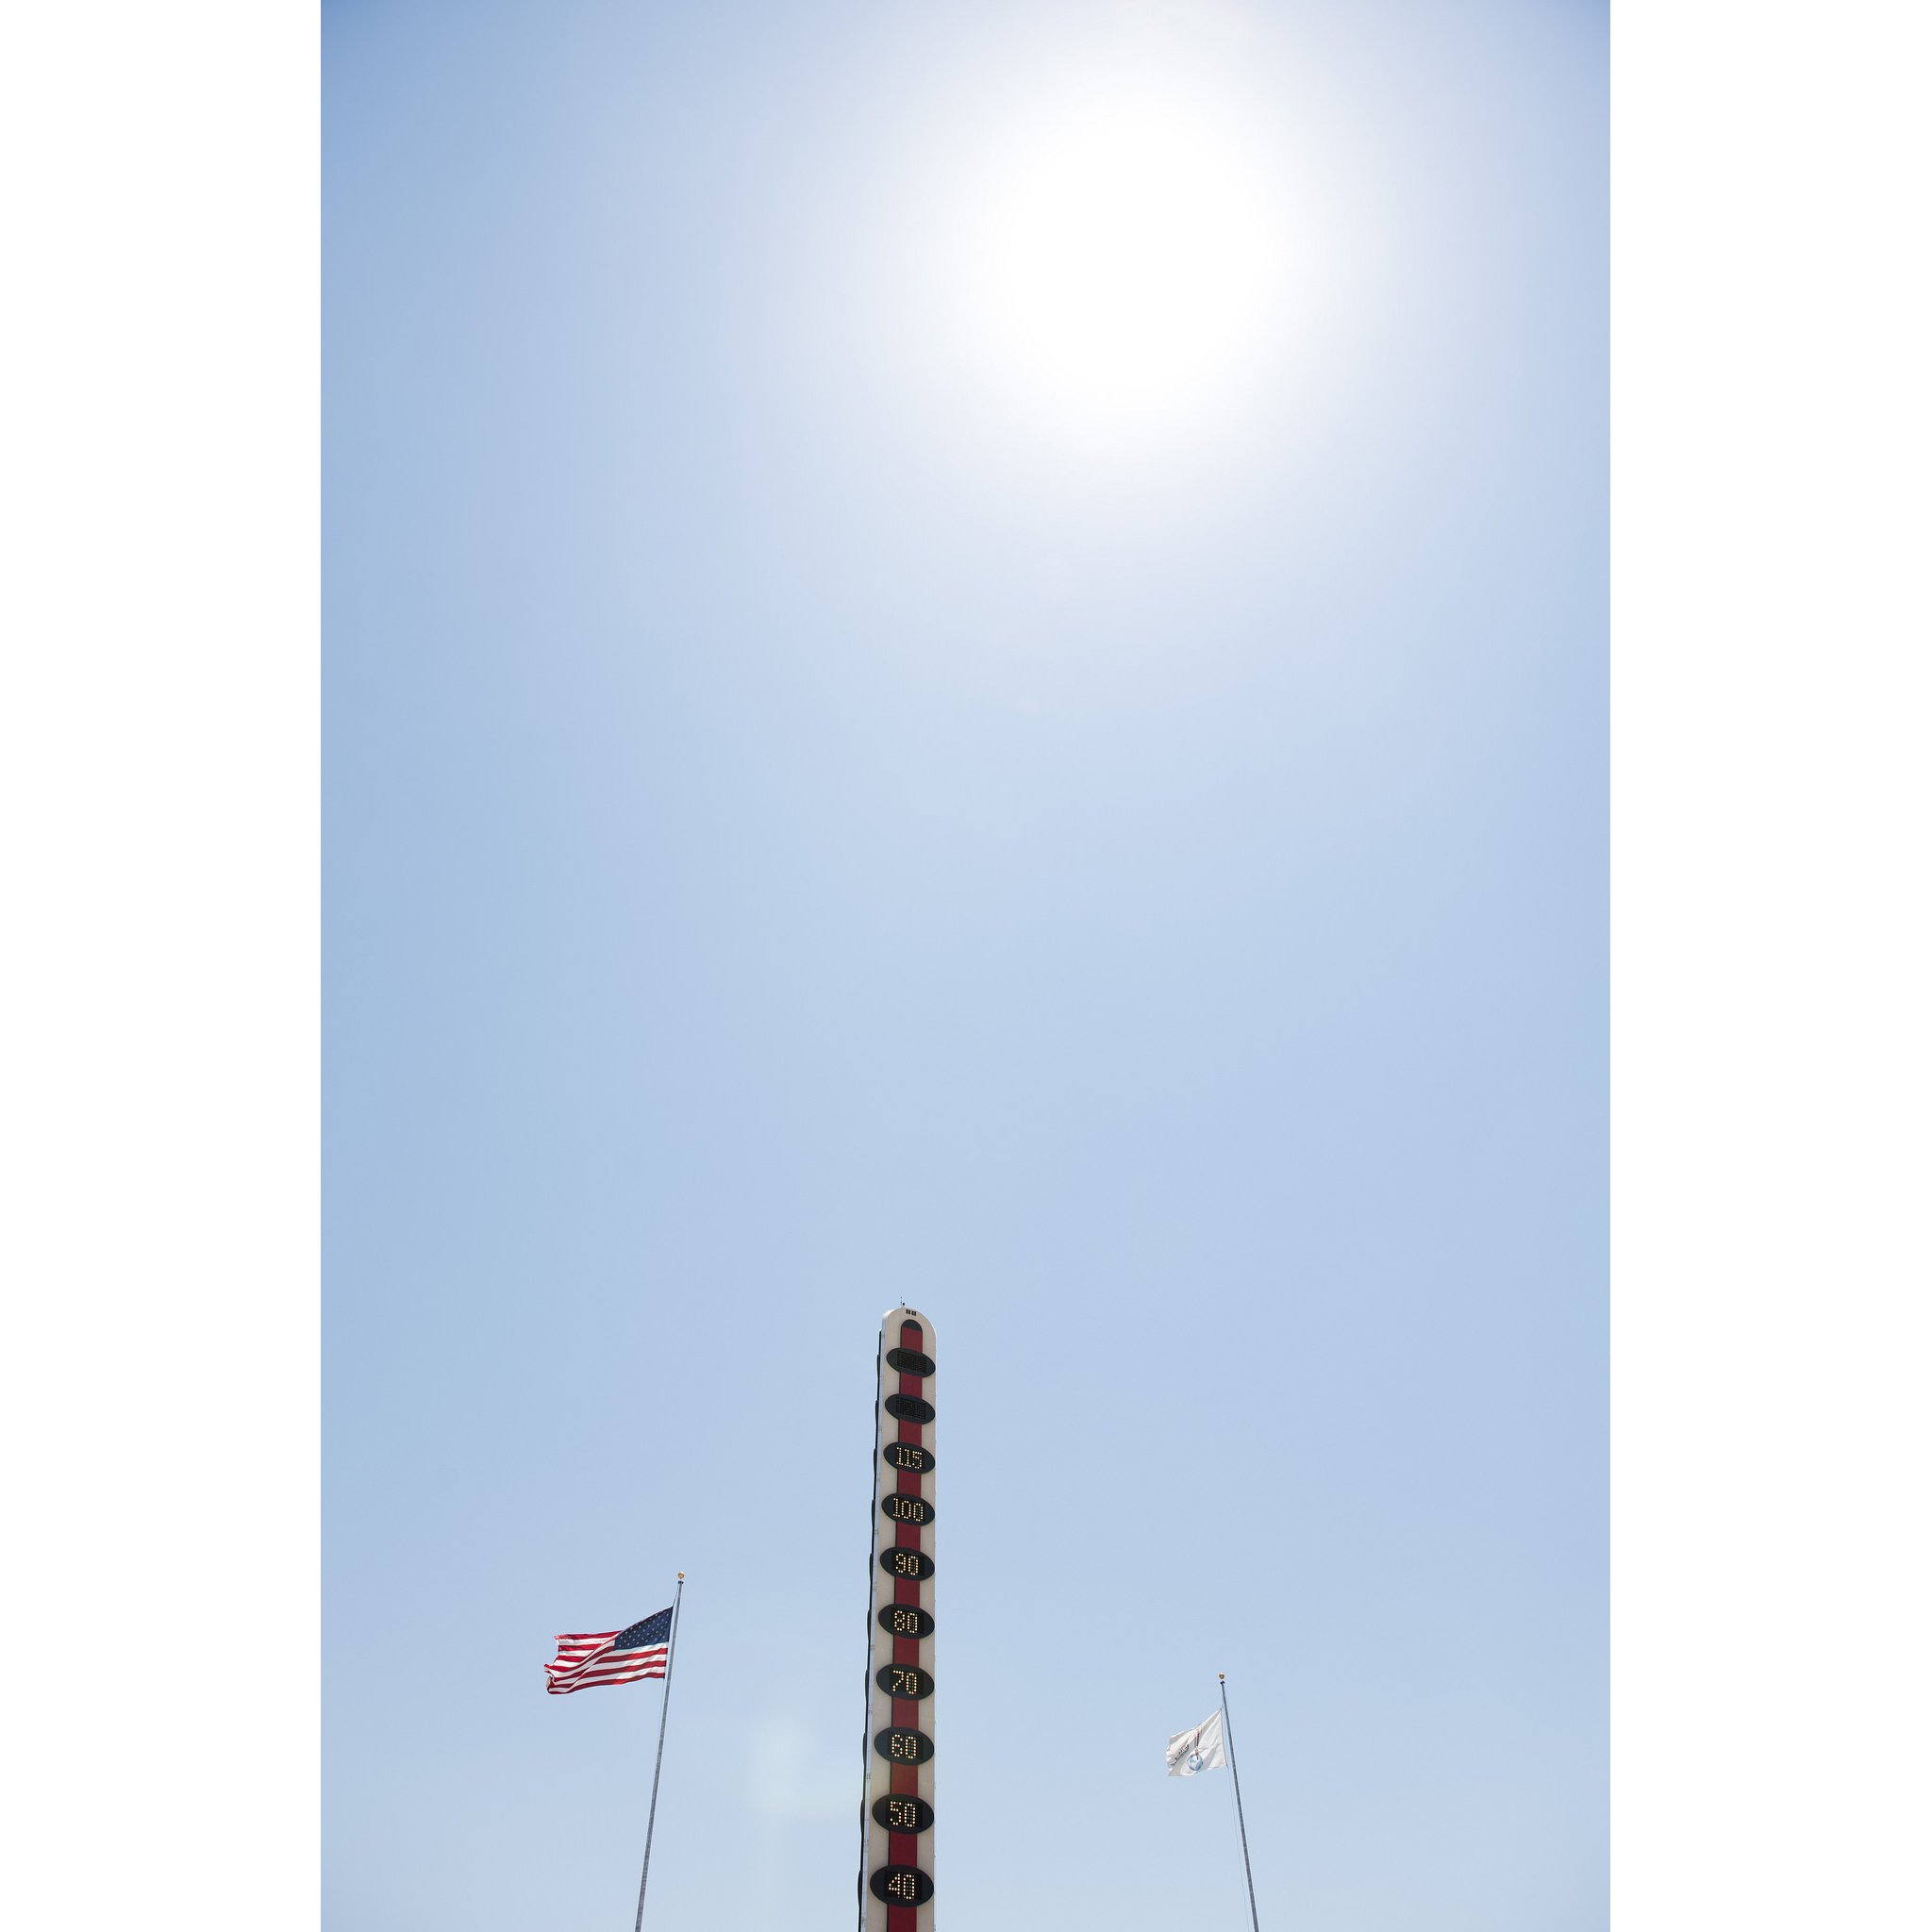 The World's Tallest Thermometer, located in Baker, Calif., reads 115 degrees Wednesday, July 27, 2016. The high temperature for Baker reached 114 degrees according to the National Weather Service.